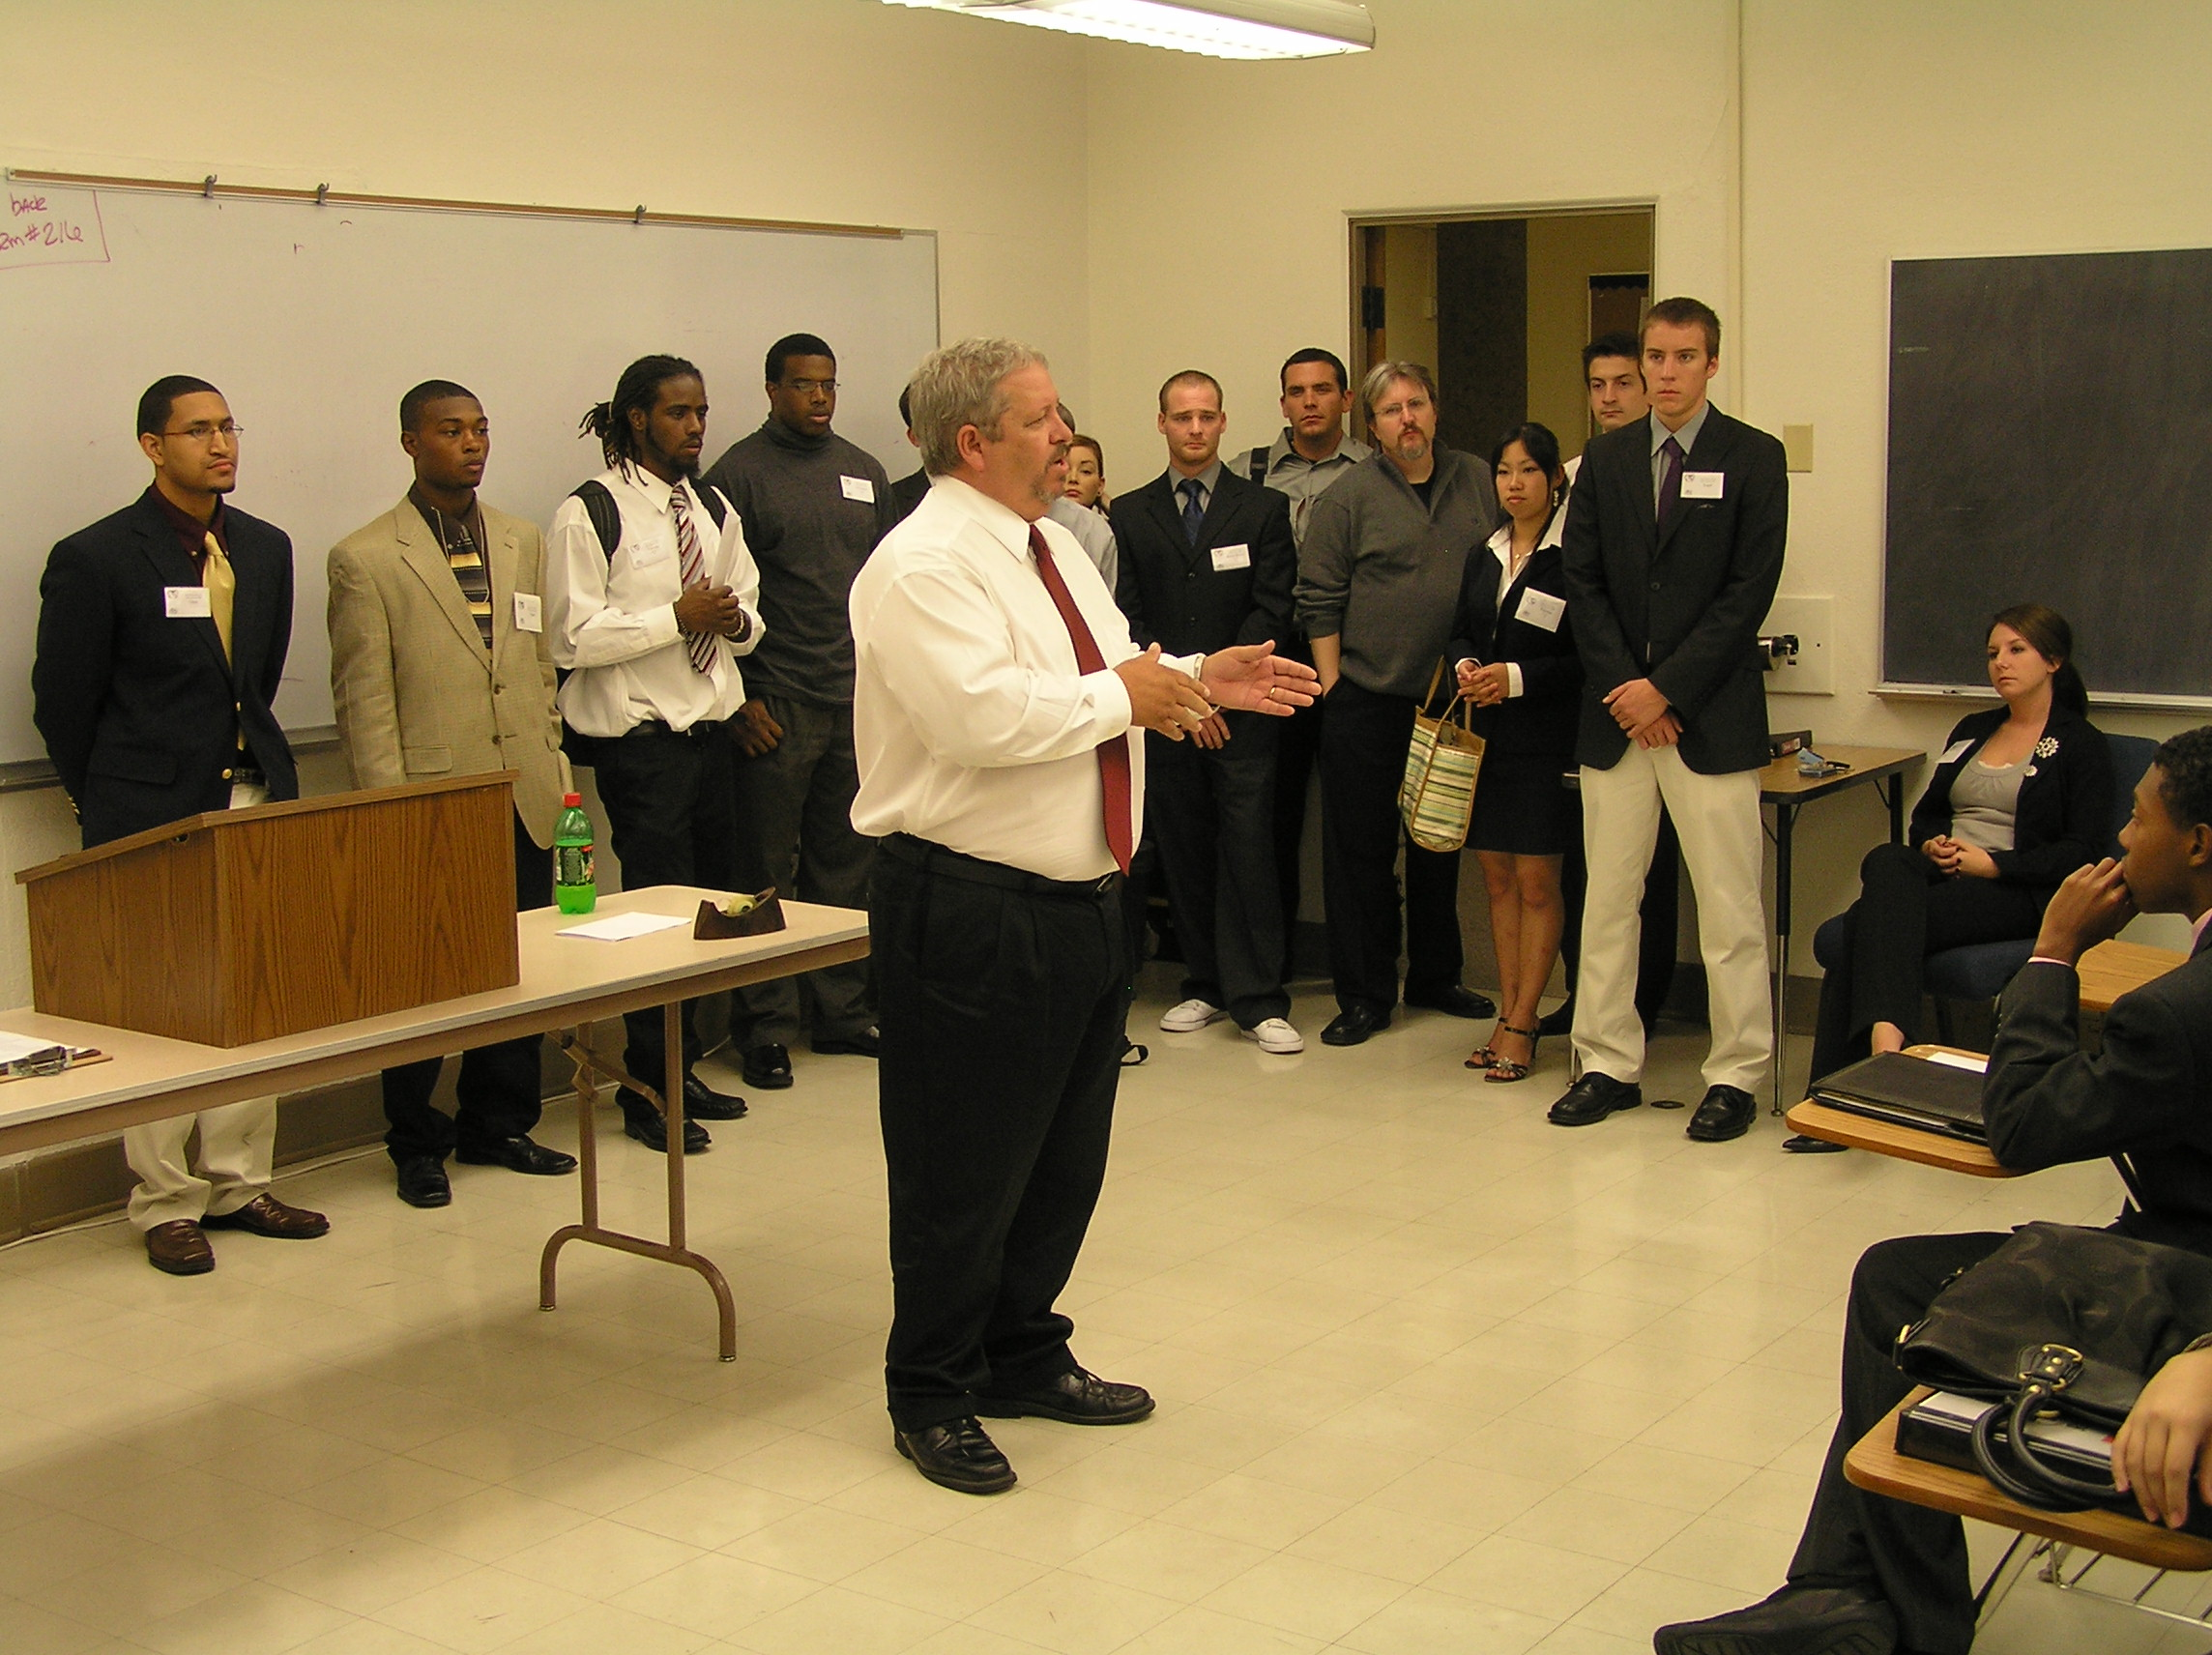 Dr. Rick Stripling, Vice Chancellor for Student Affairs, speaks to students.